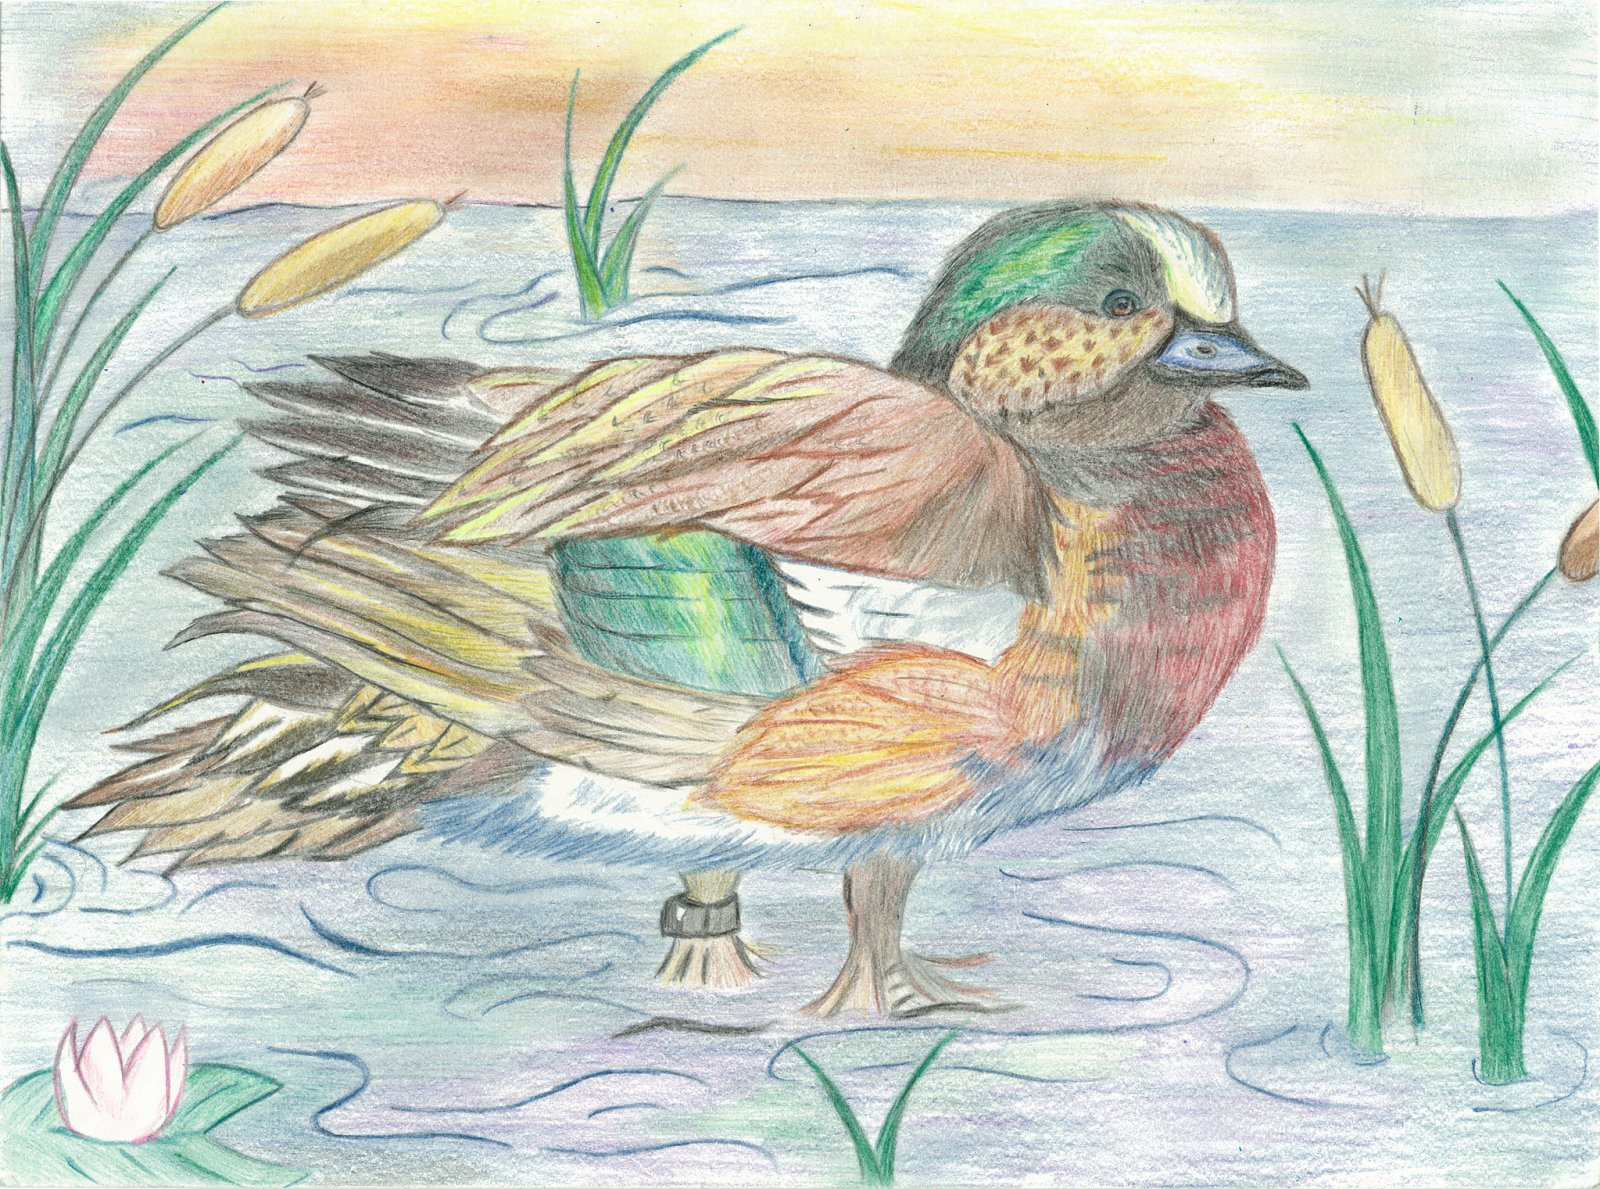 Colored pencil illustration of a duck